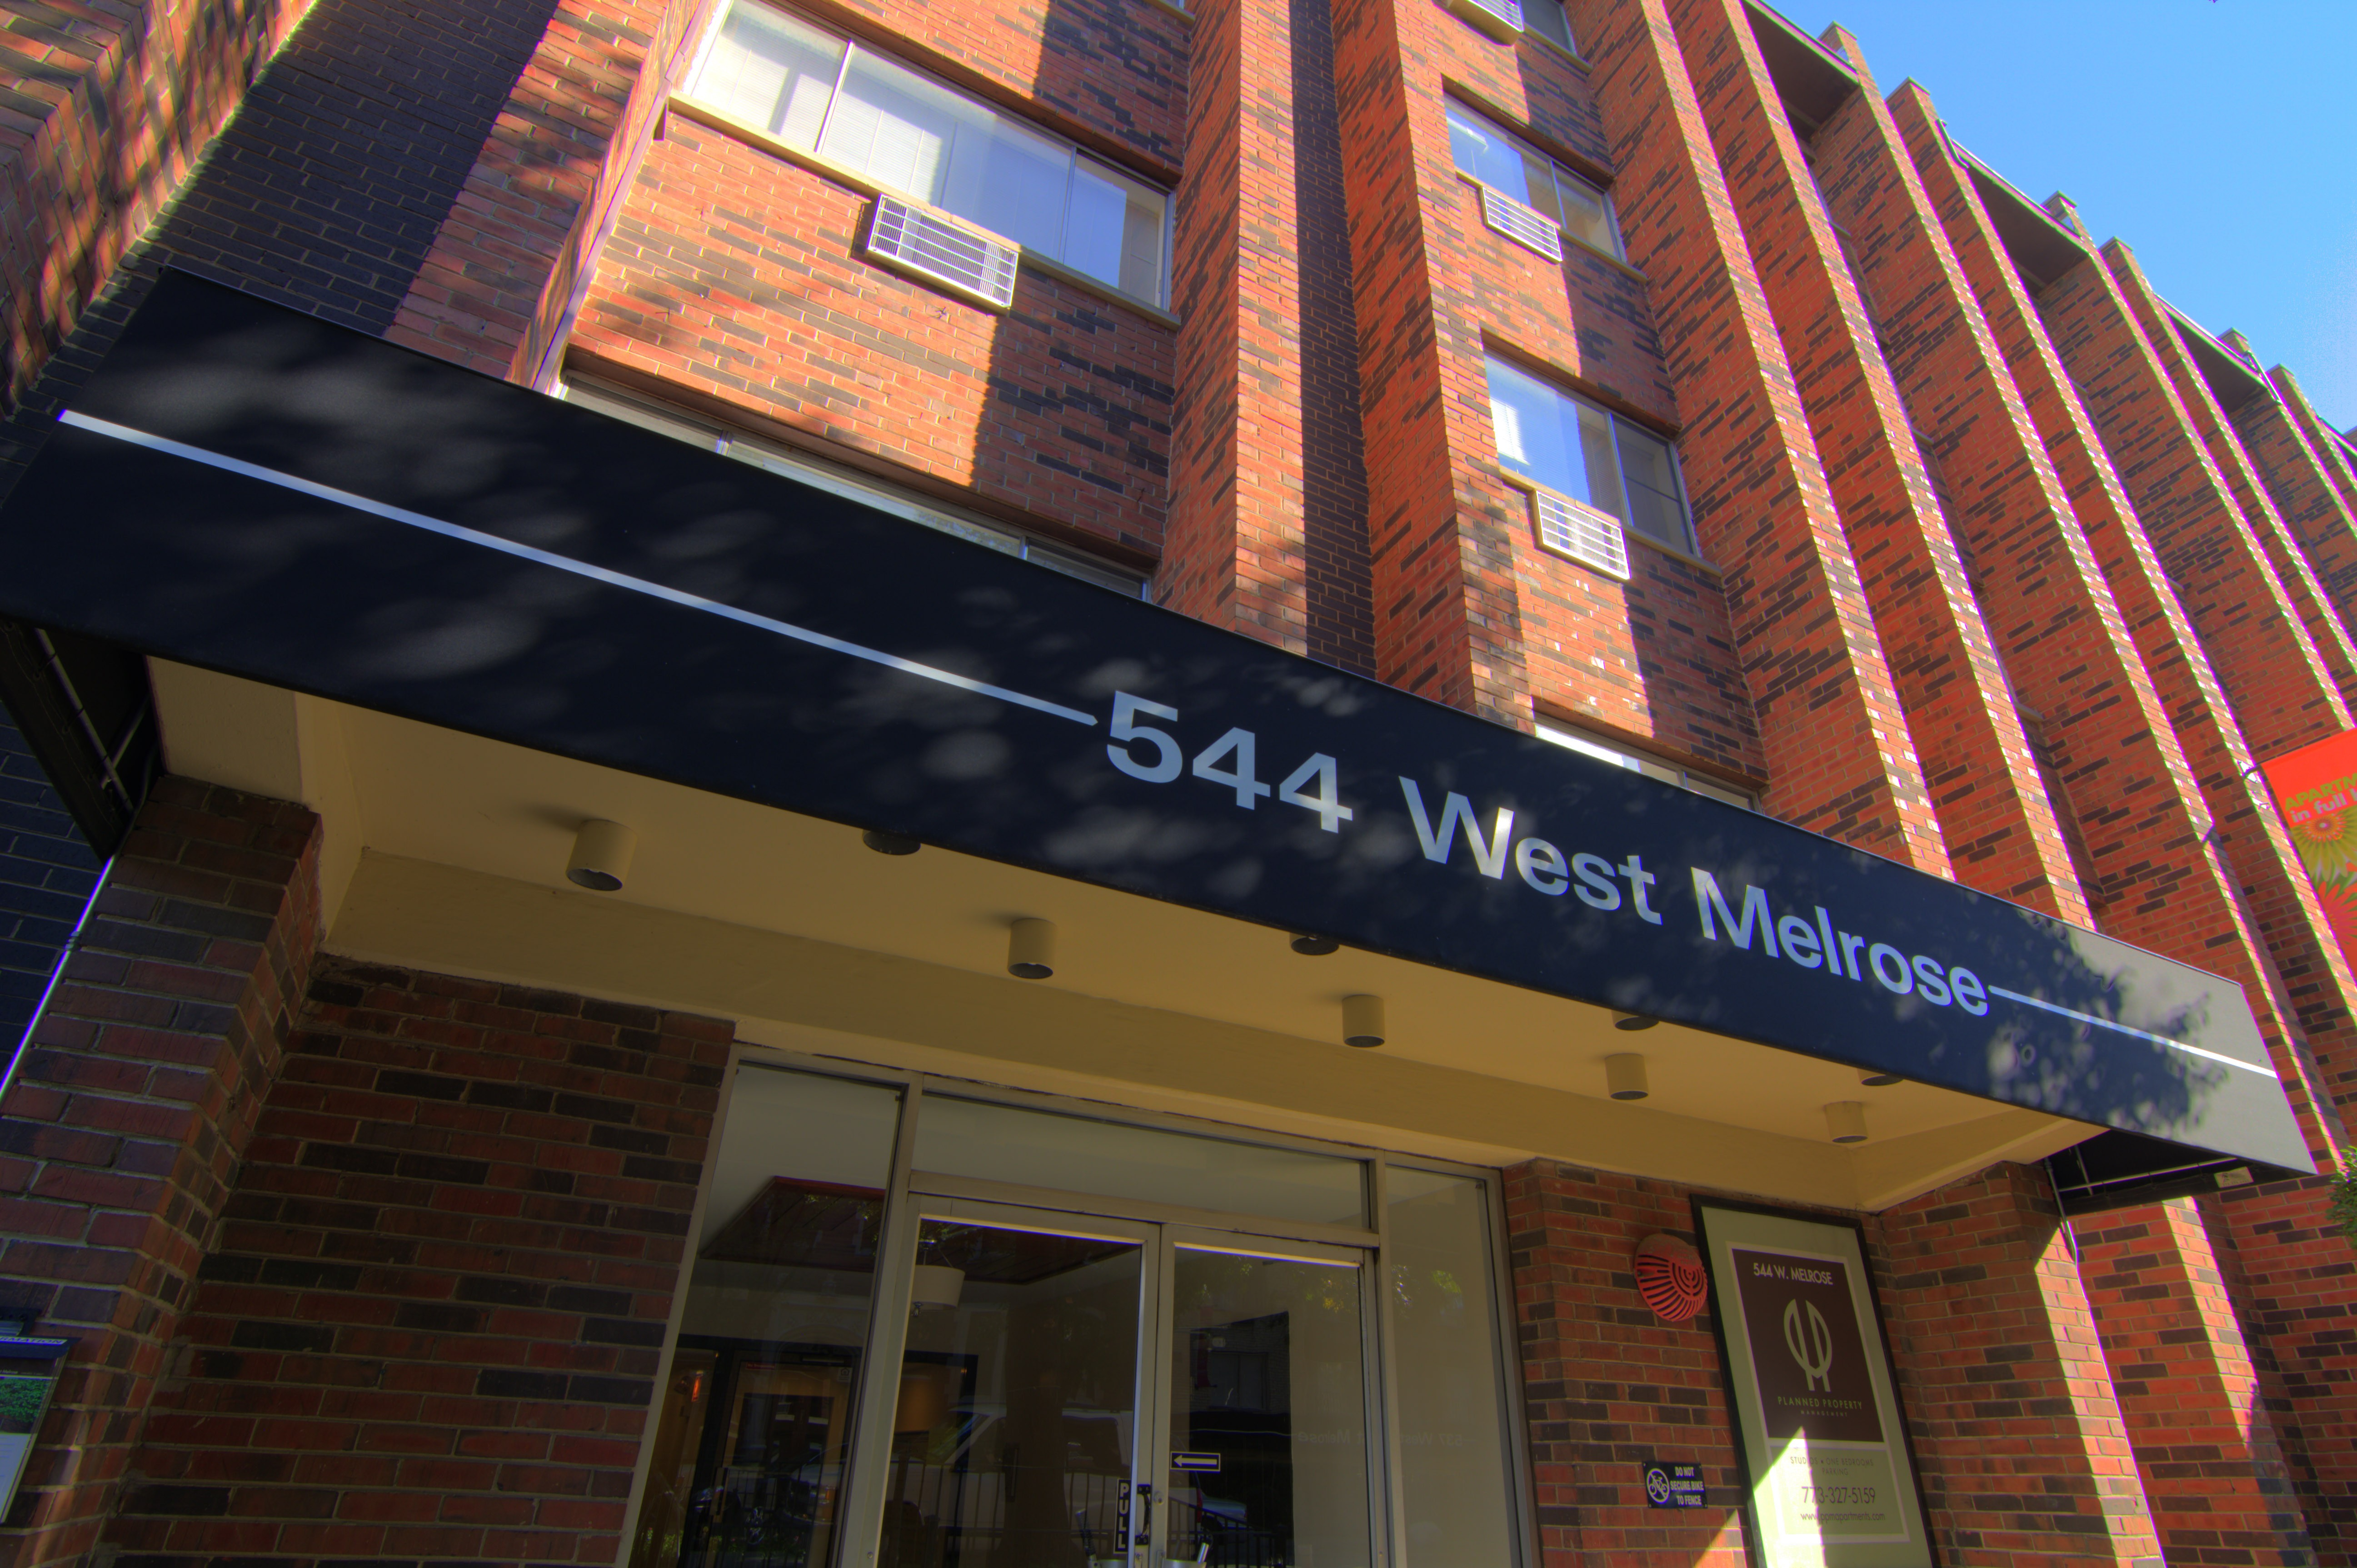 544 w melrose st chicago il 60657 1 bedroom apartment - One bedroom apartments in chicago il ...